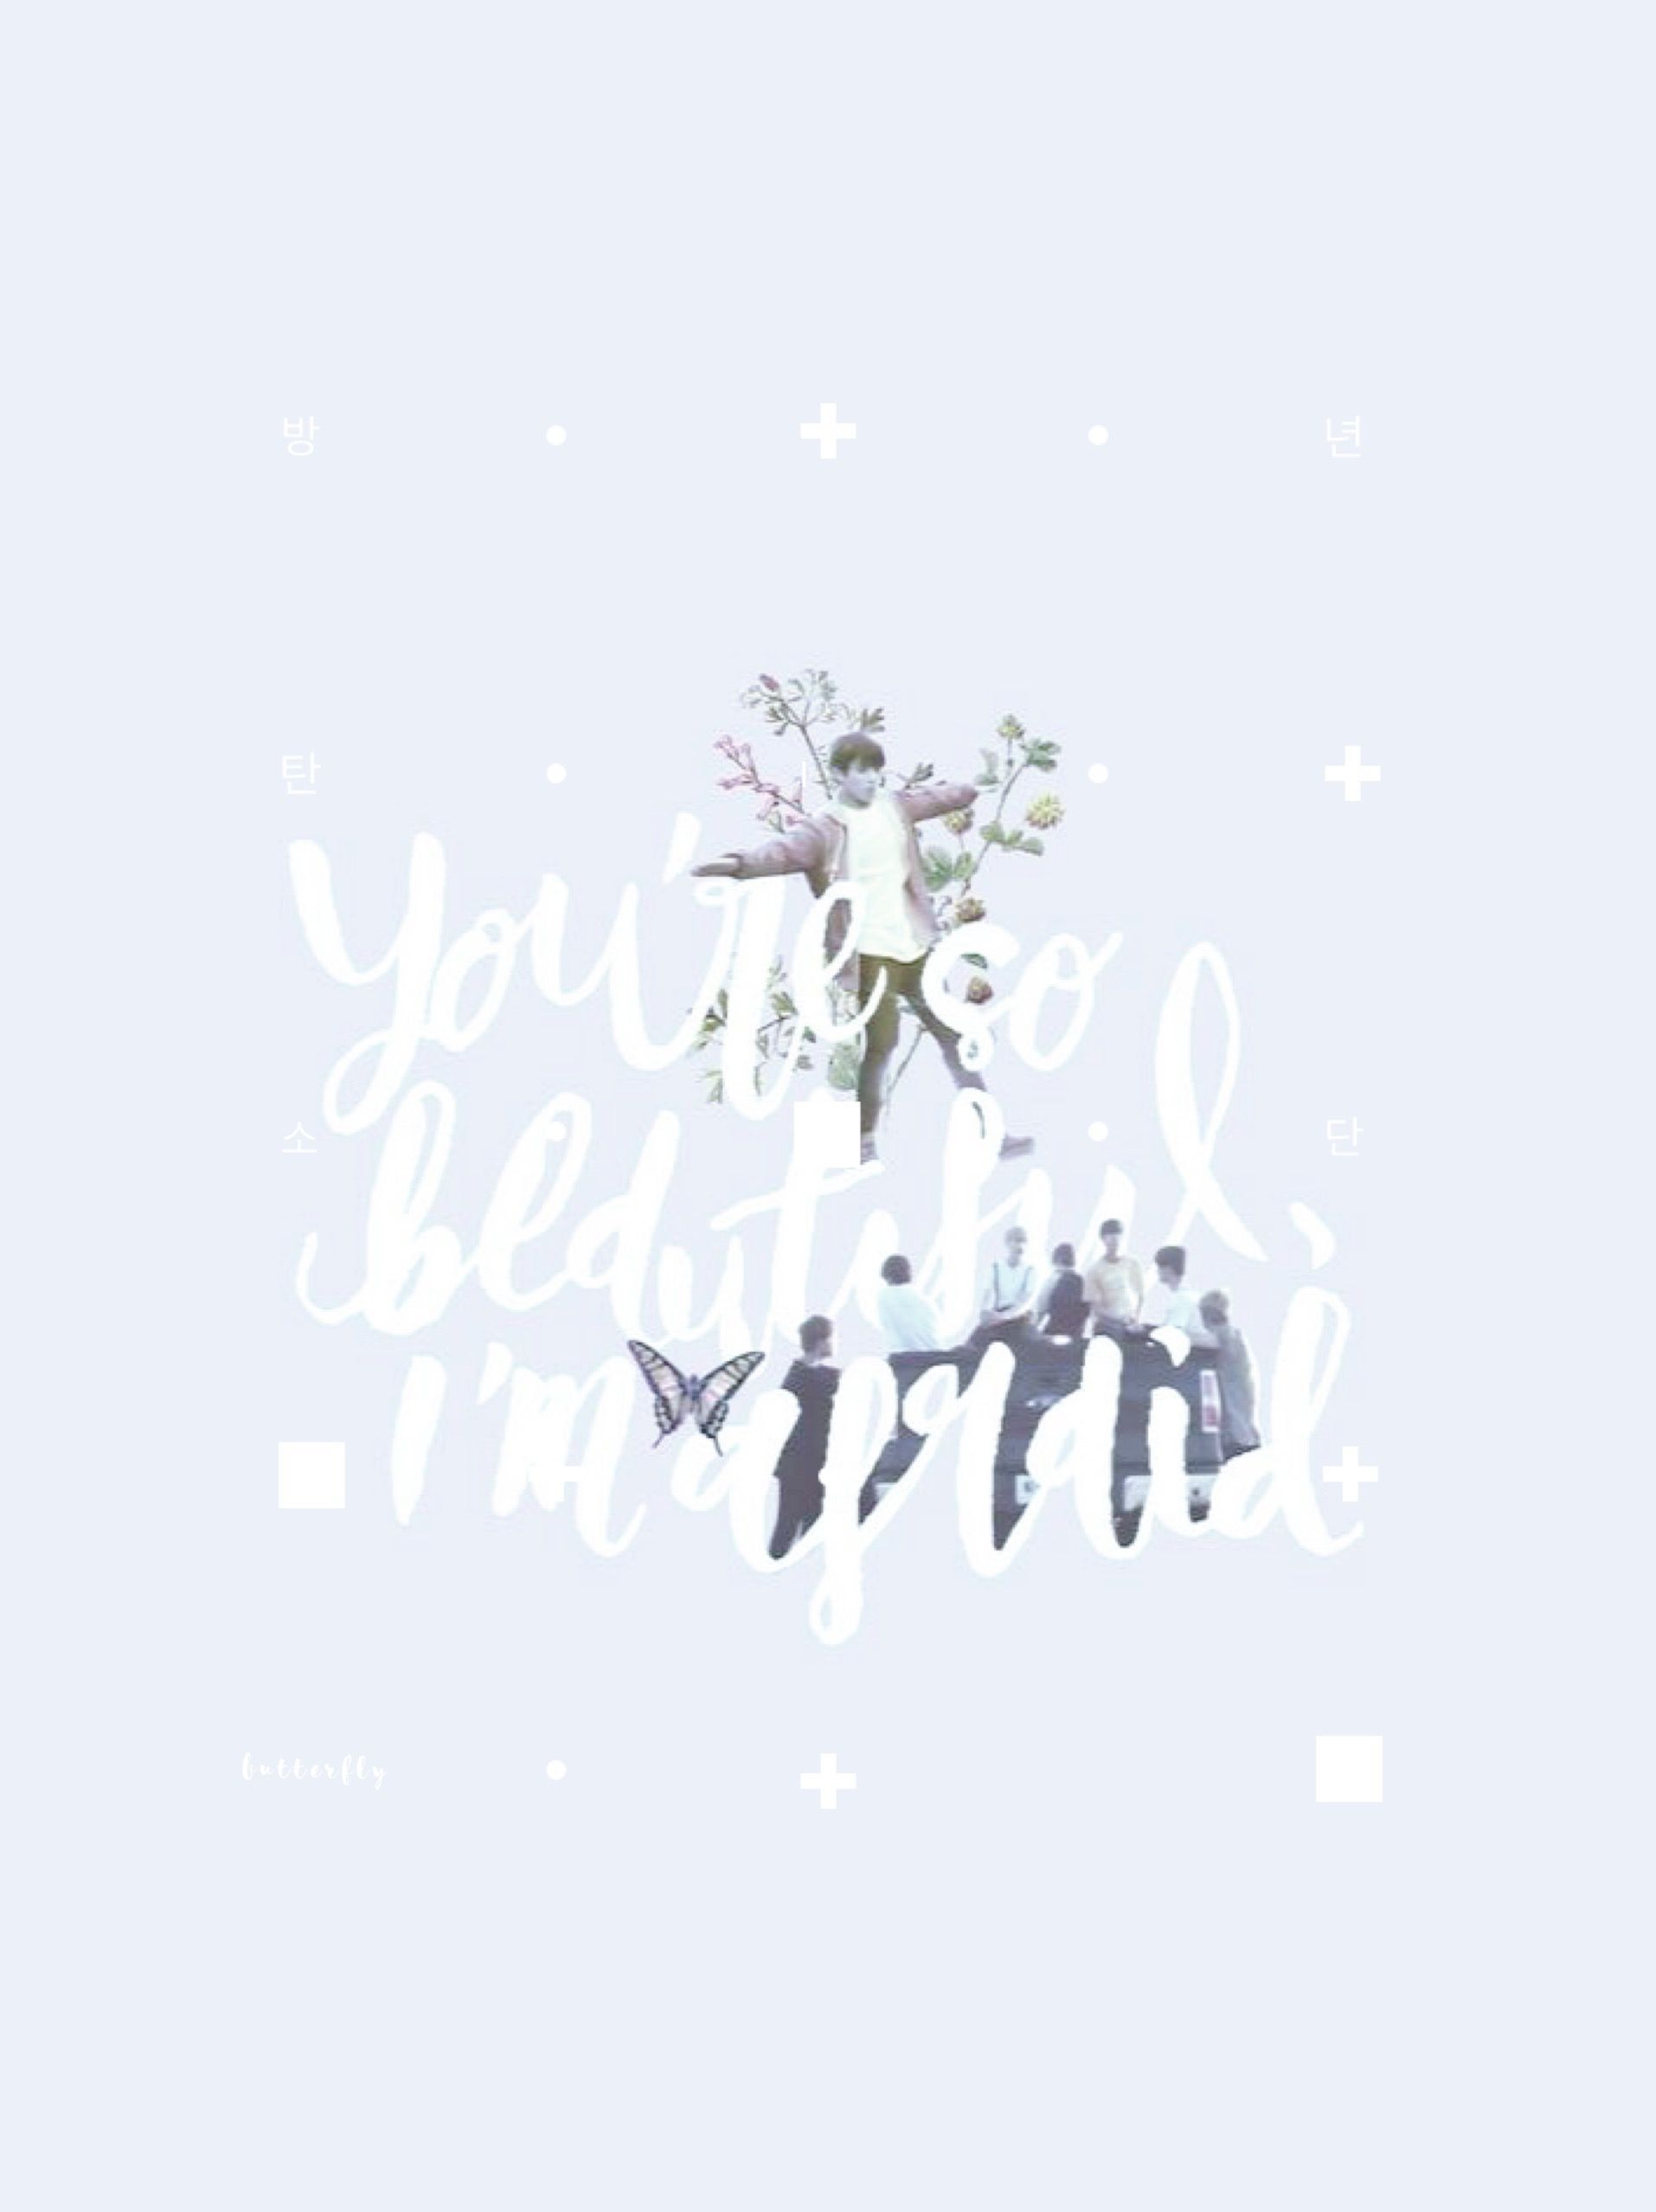 Bts Butterfly Wallpapers Top Free Bts Butterfly Backgrounds Wallpaperaccess